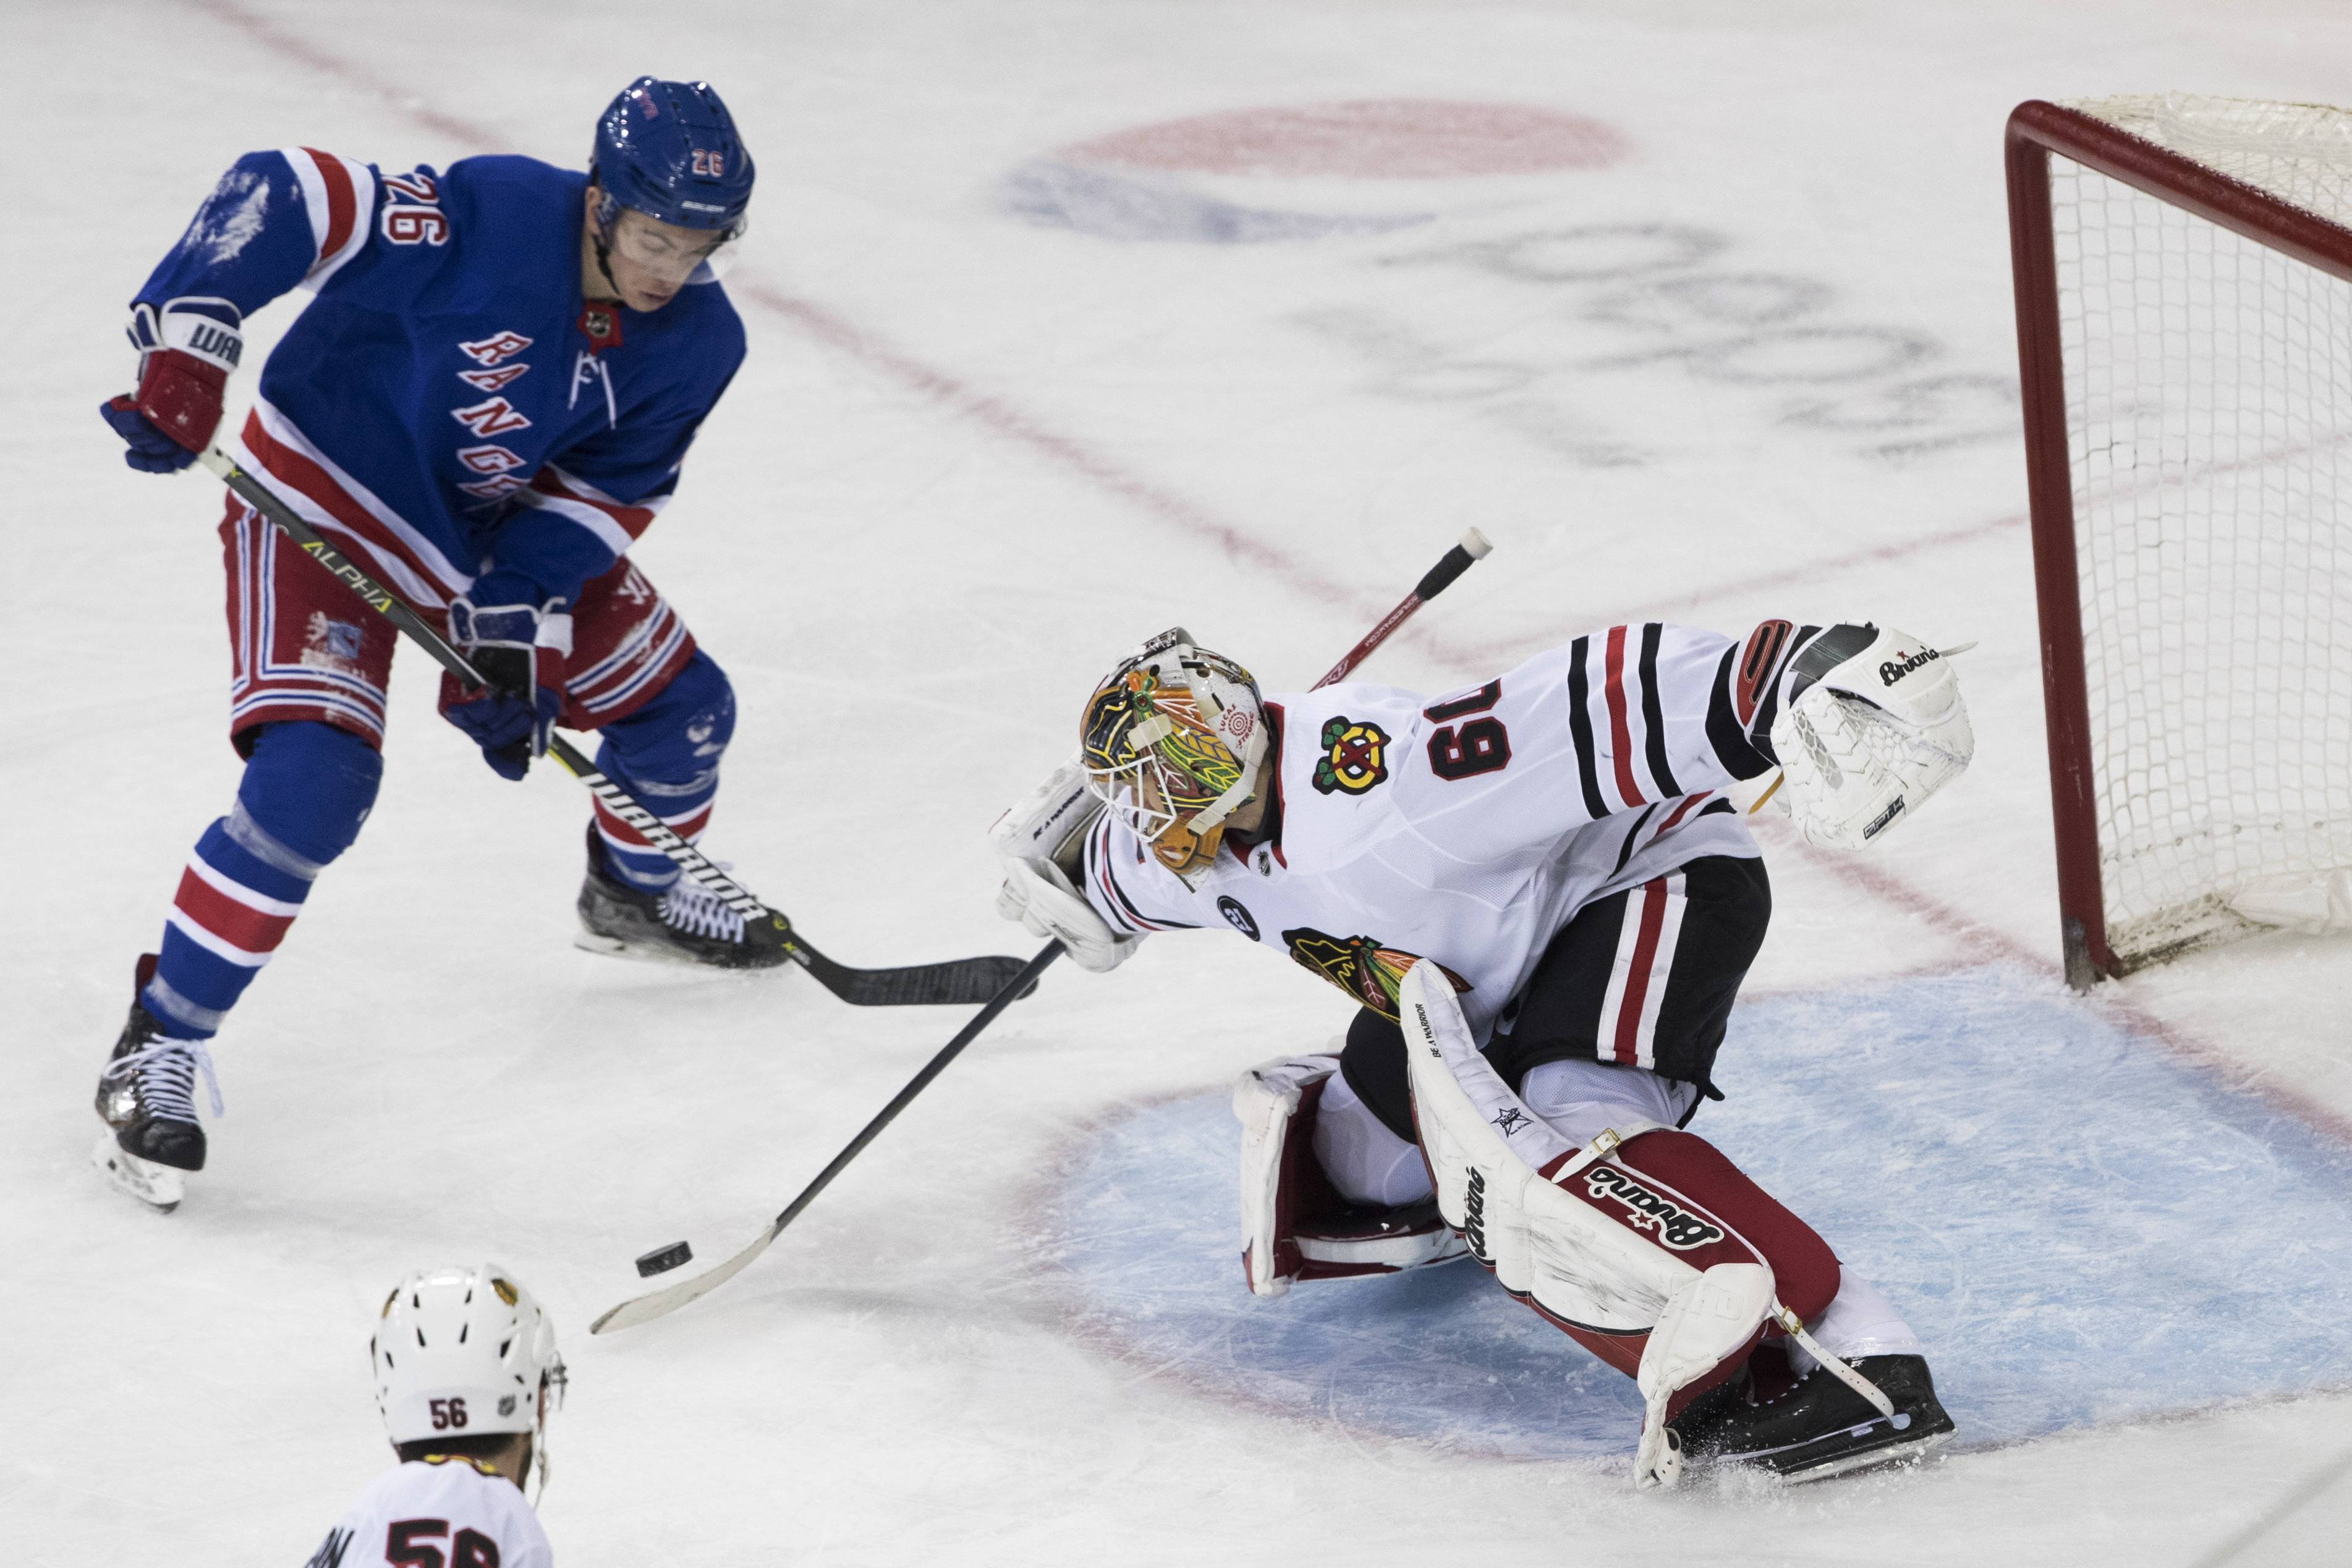 Chicago Blackhawks goaltender Collin Delia (60) makes a save against New York Rangers left wing Jimmy Vesey (26) during the third period of an NHL hockey game Thursday, Jan. 17, 2019, at Madison Square Garden in New York. The Rangers won 4-3.